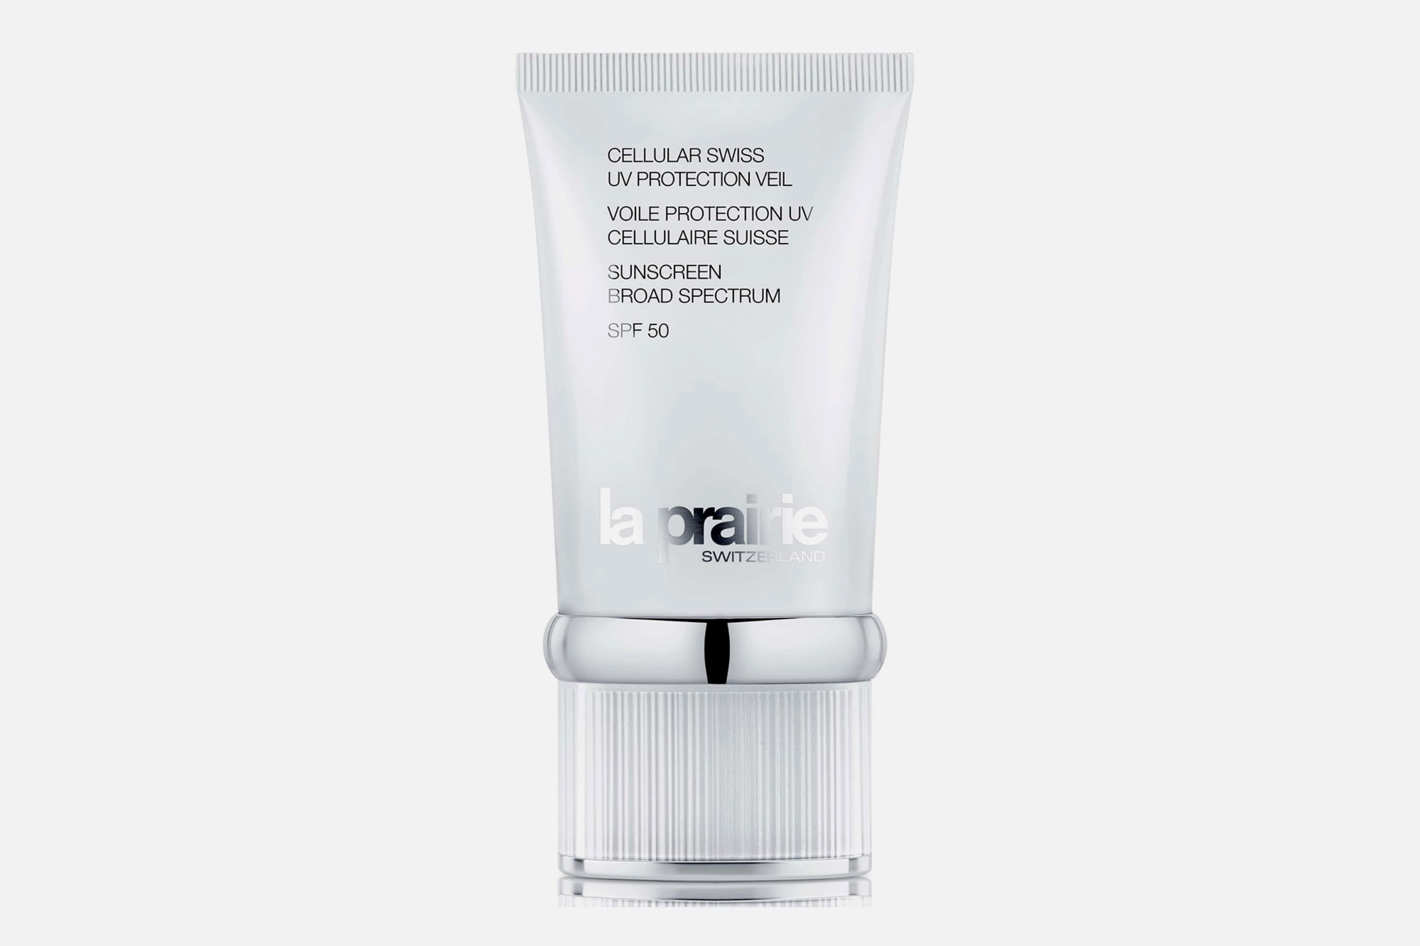 La Prairie Cellular Swiss UV Protection Veil Sunscreen Broad Spectrum SPF 50